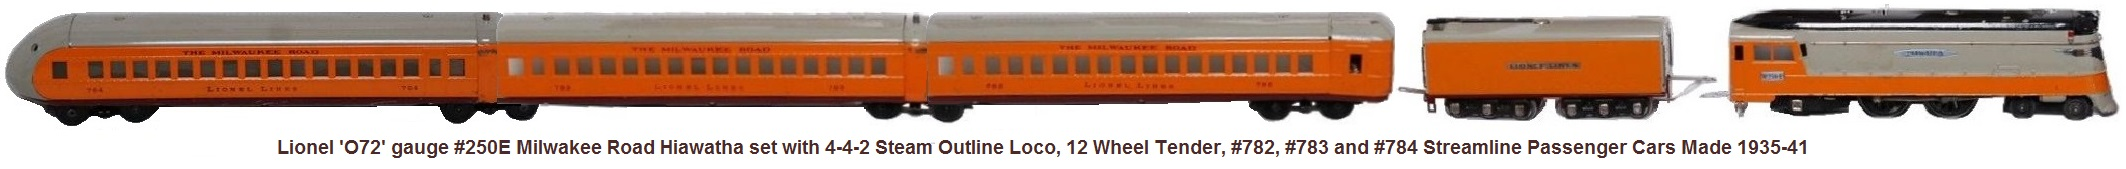 Lionel 'O72' gauge #250 Milwaukee Road Hiawatha Streamliner Passenger Set circa 1935-41